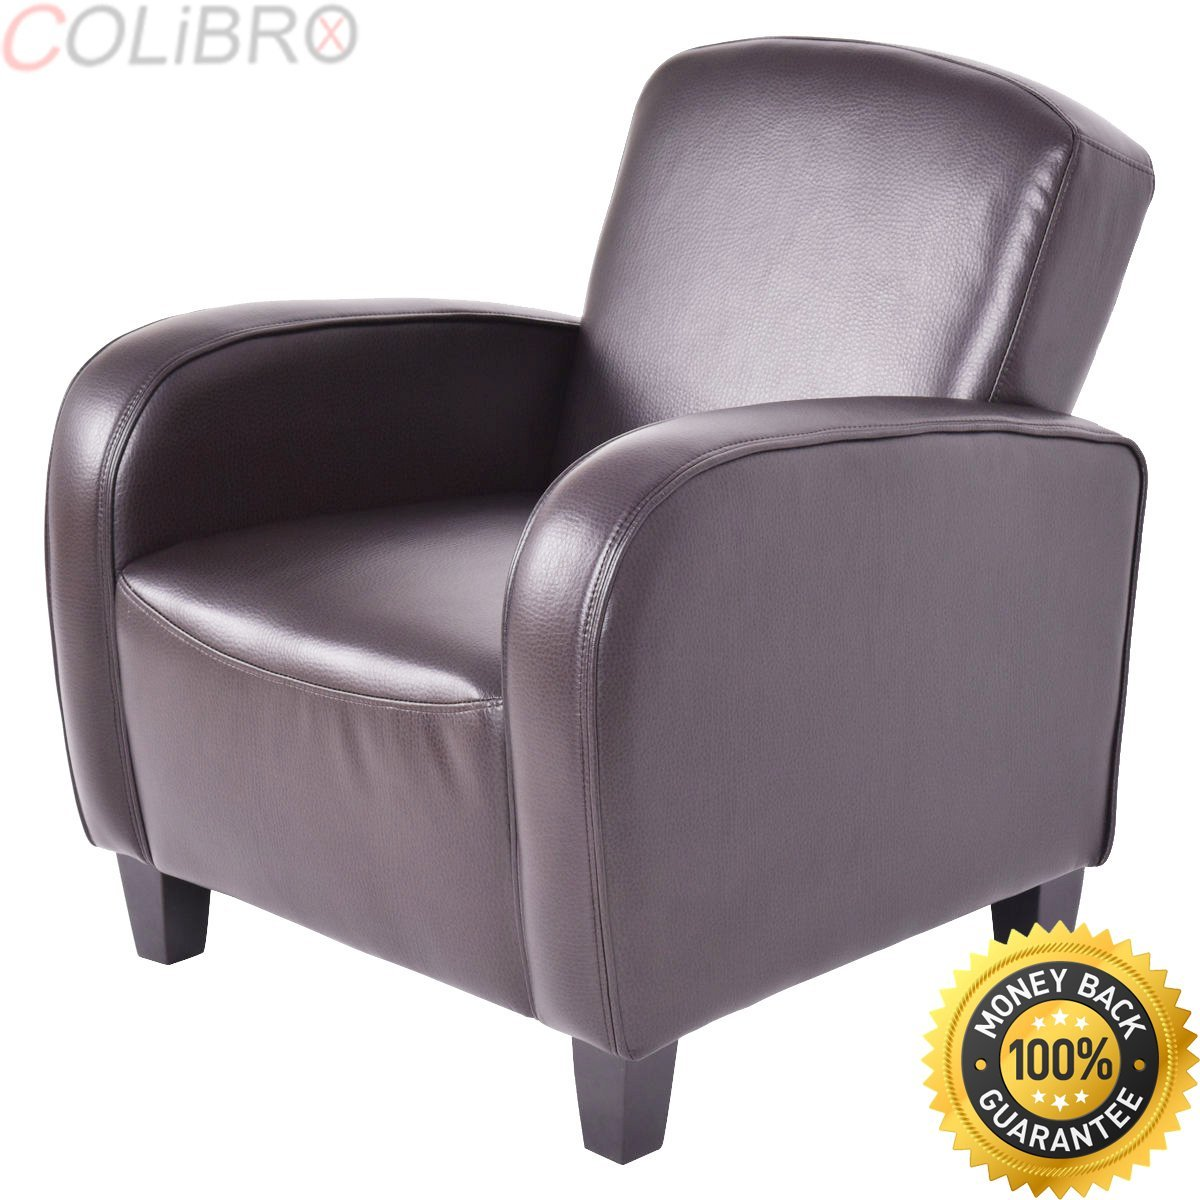 COLIBROX--Modern Accent Arm Chair Single Sofa Seat Leisure Living Room Furniture Brown. modern accent chairs for living room. modern accent chairs clearance. accent arm chairs.accent chairs with arms.